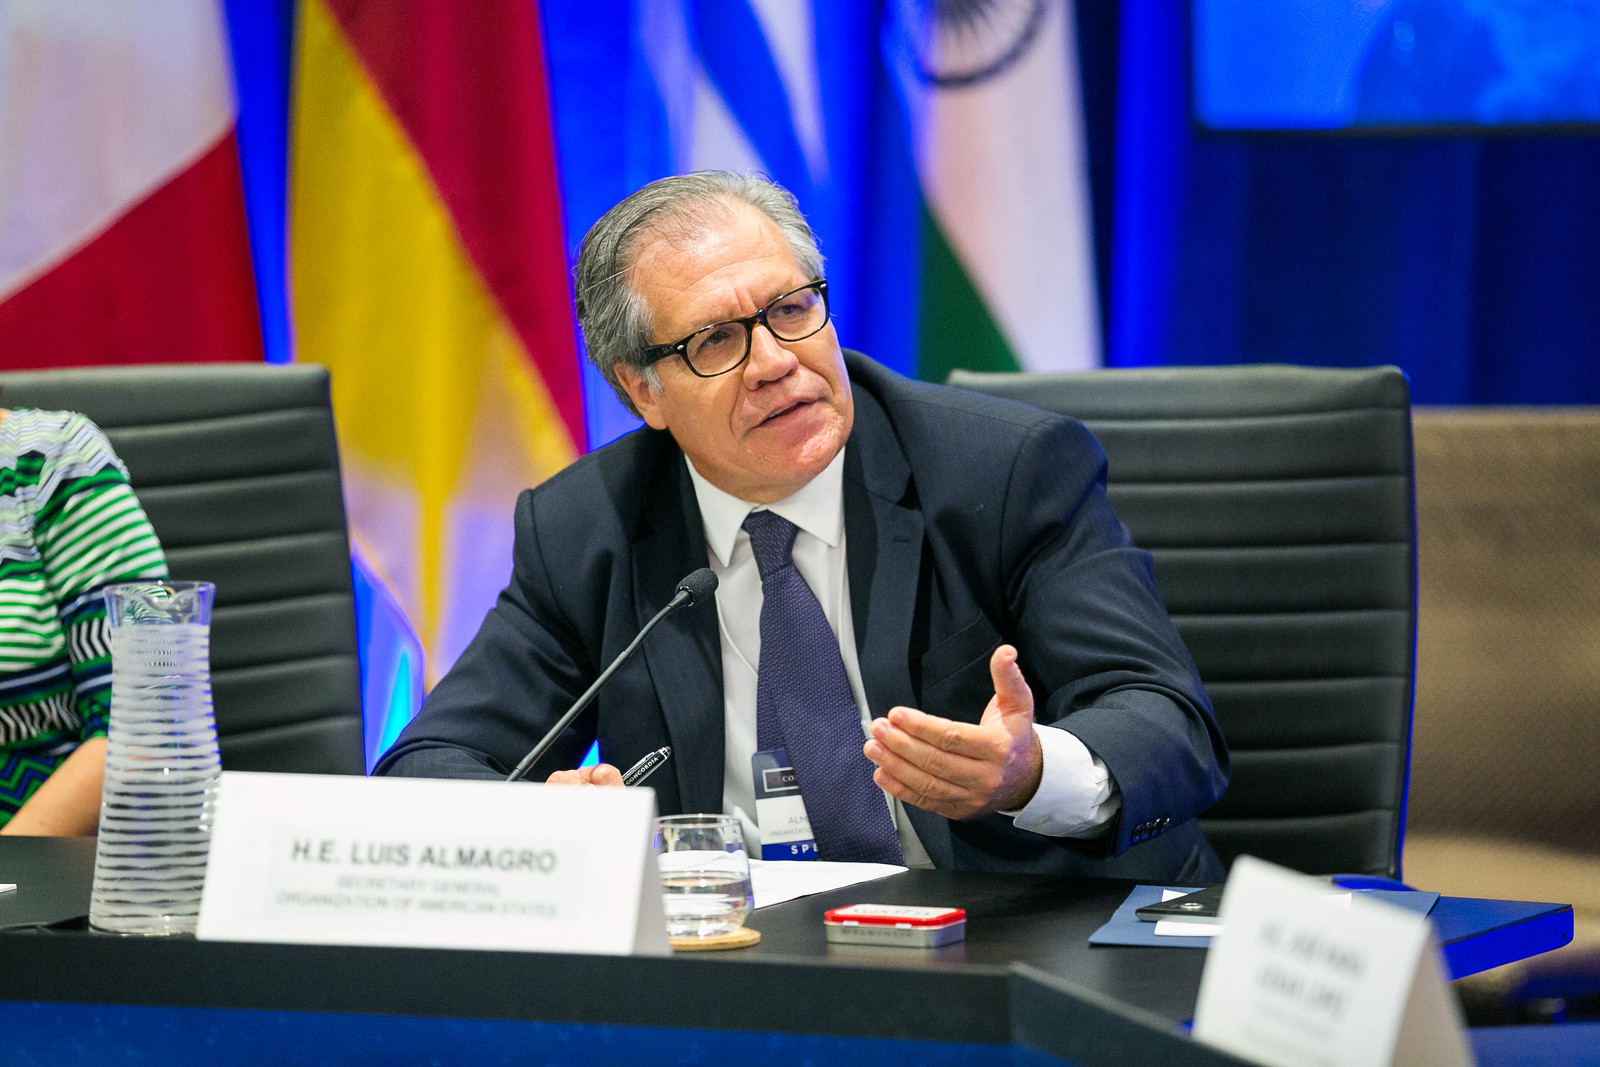 i vSWH4PZ X3 - Concordia welcomes H.E. Luis Almagro to the Leadership Council